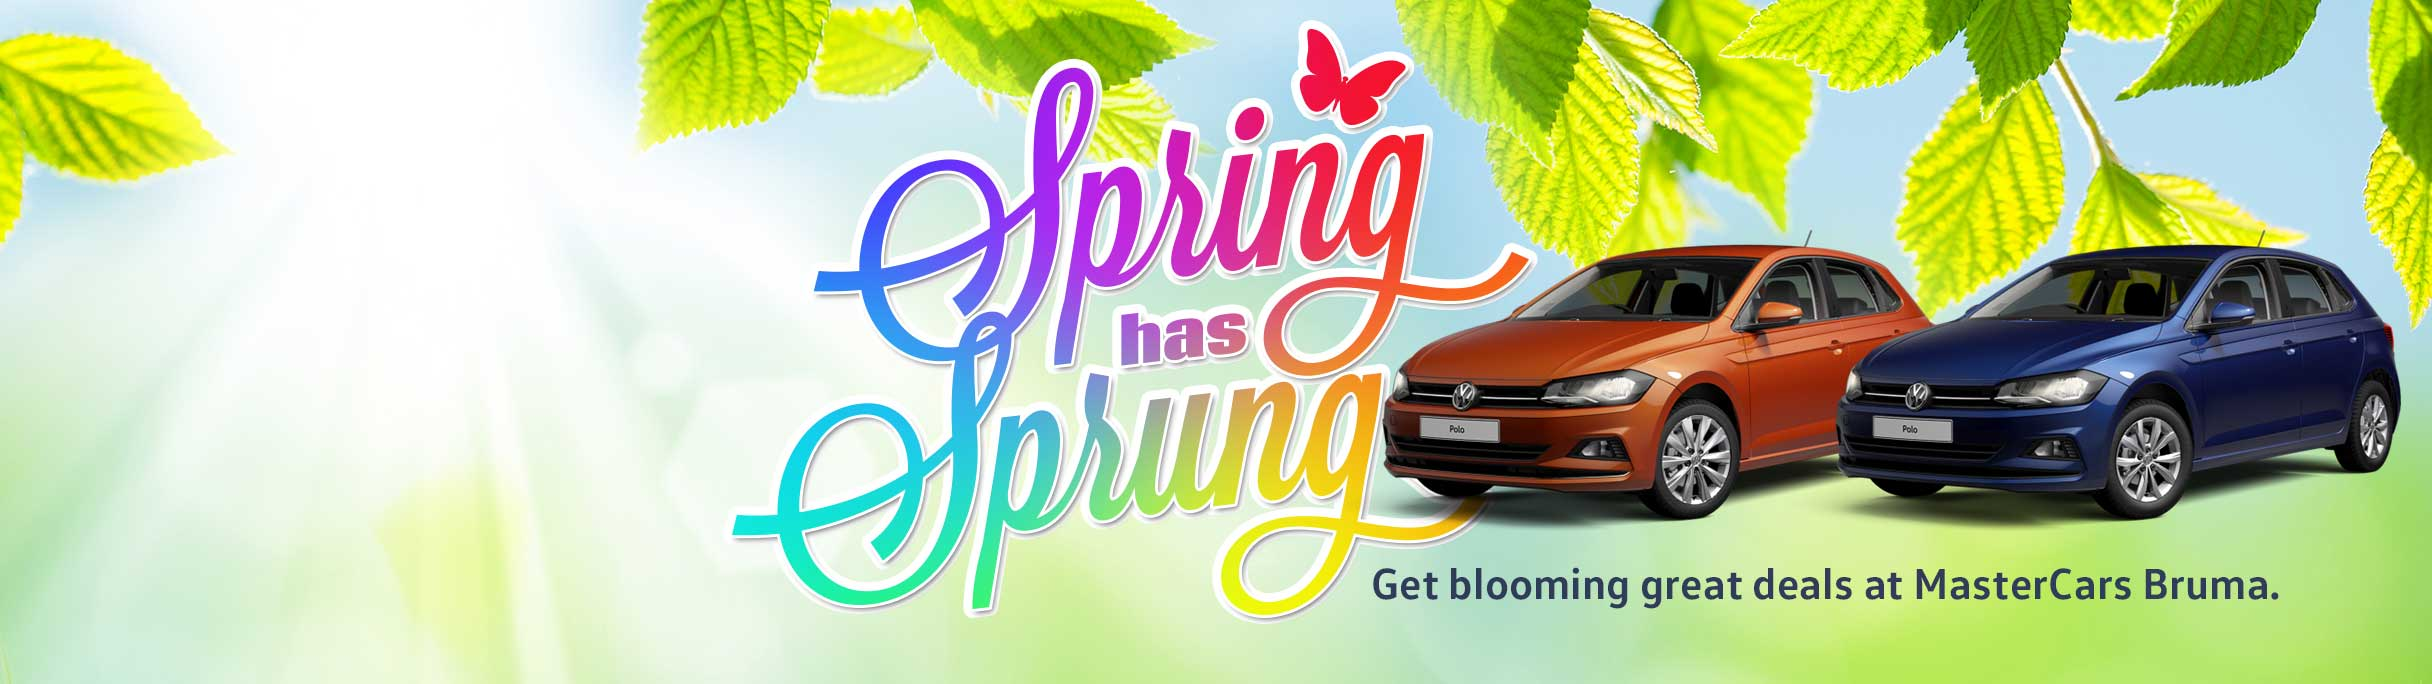 Get blooming great deals at MasterCars Barons  Bruma